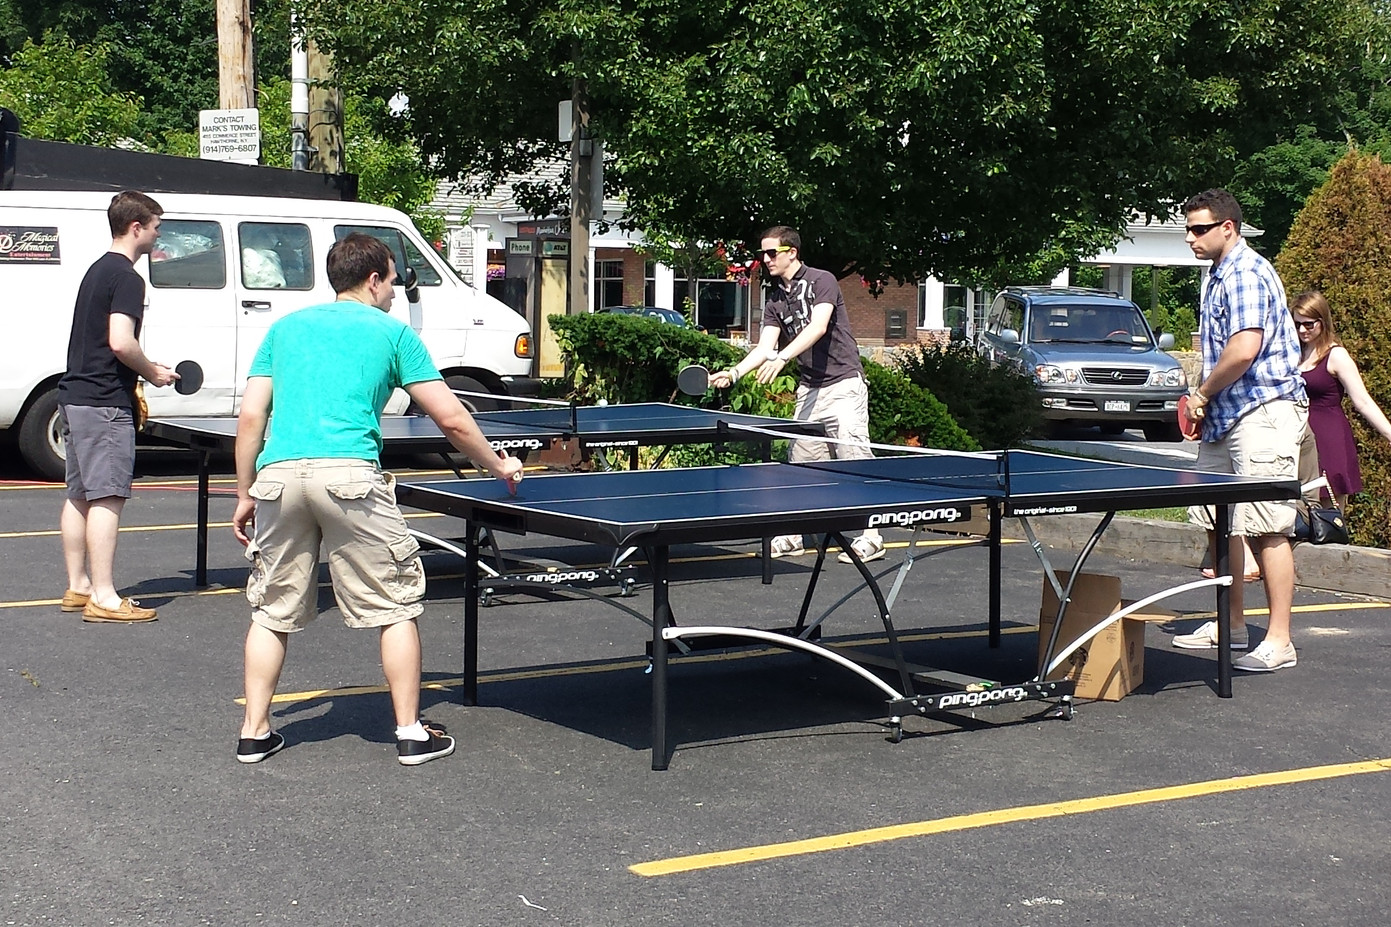 Two-Pairs-Of-Man-Playing-Table-Tennis-No-Contact-Game.jpg